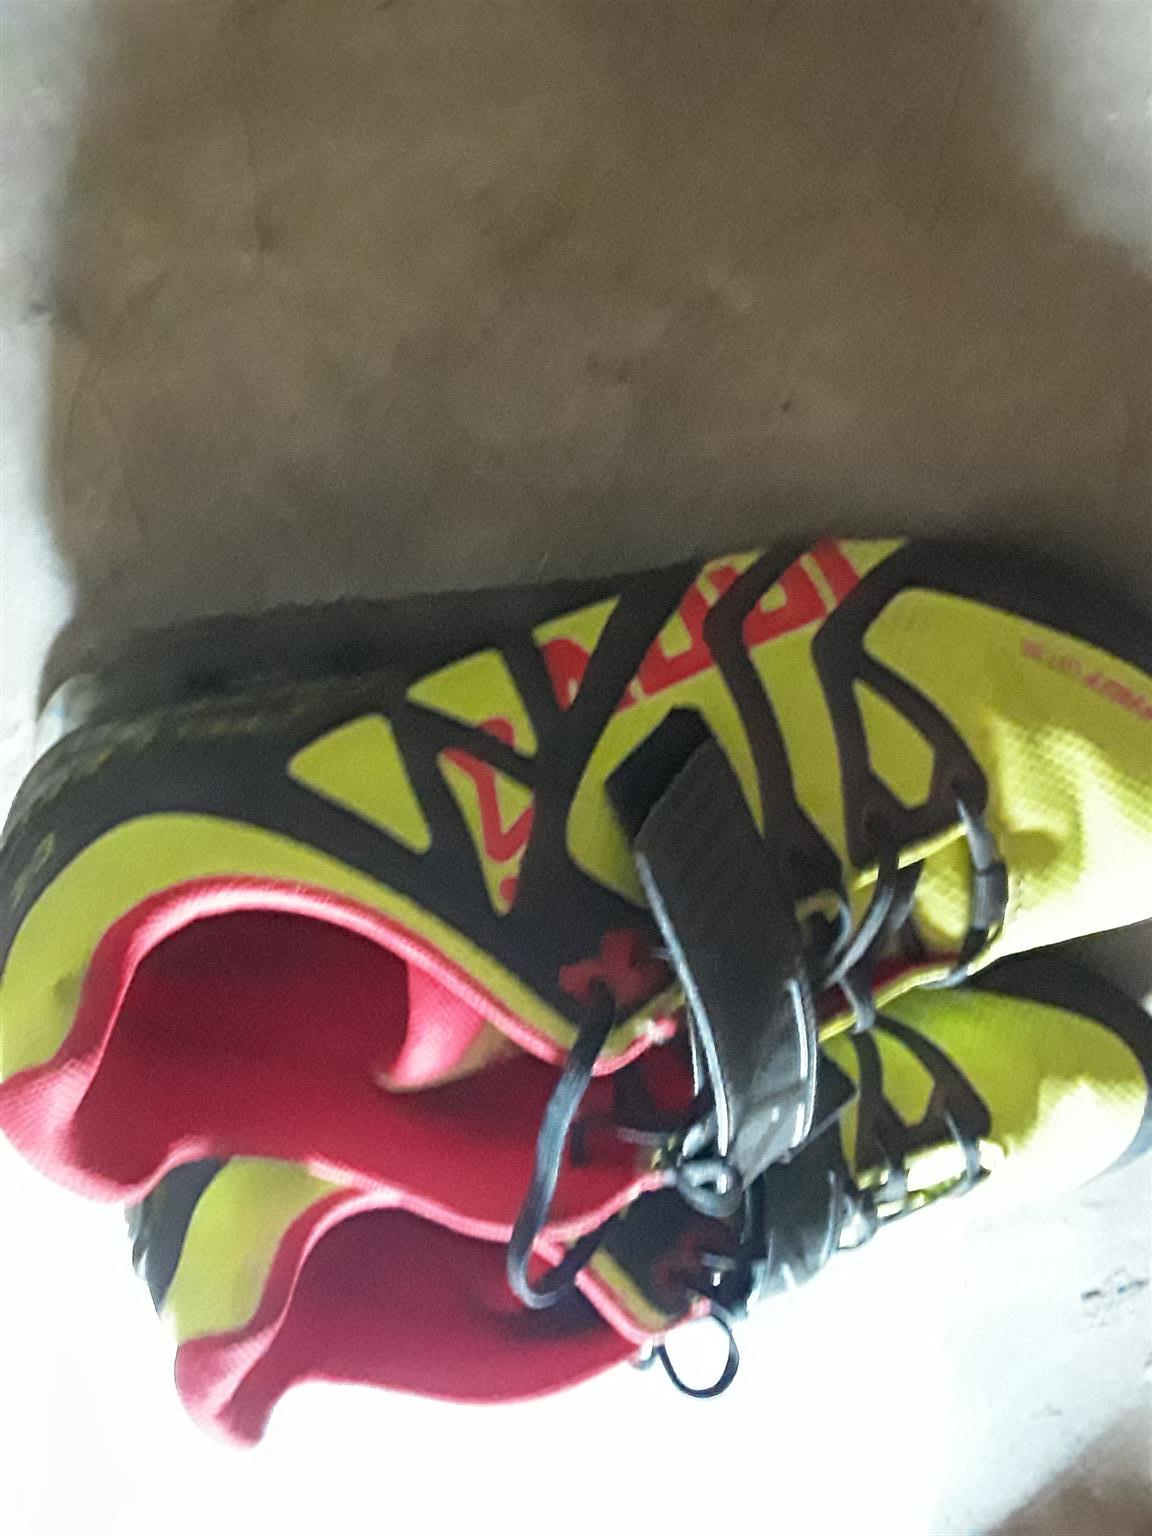 Olympic weight lifting shoes - size 9